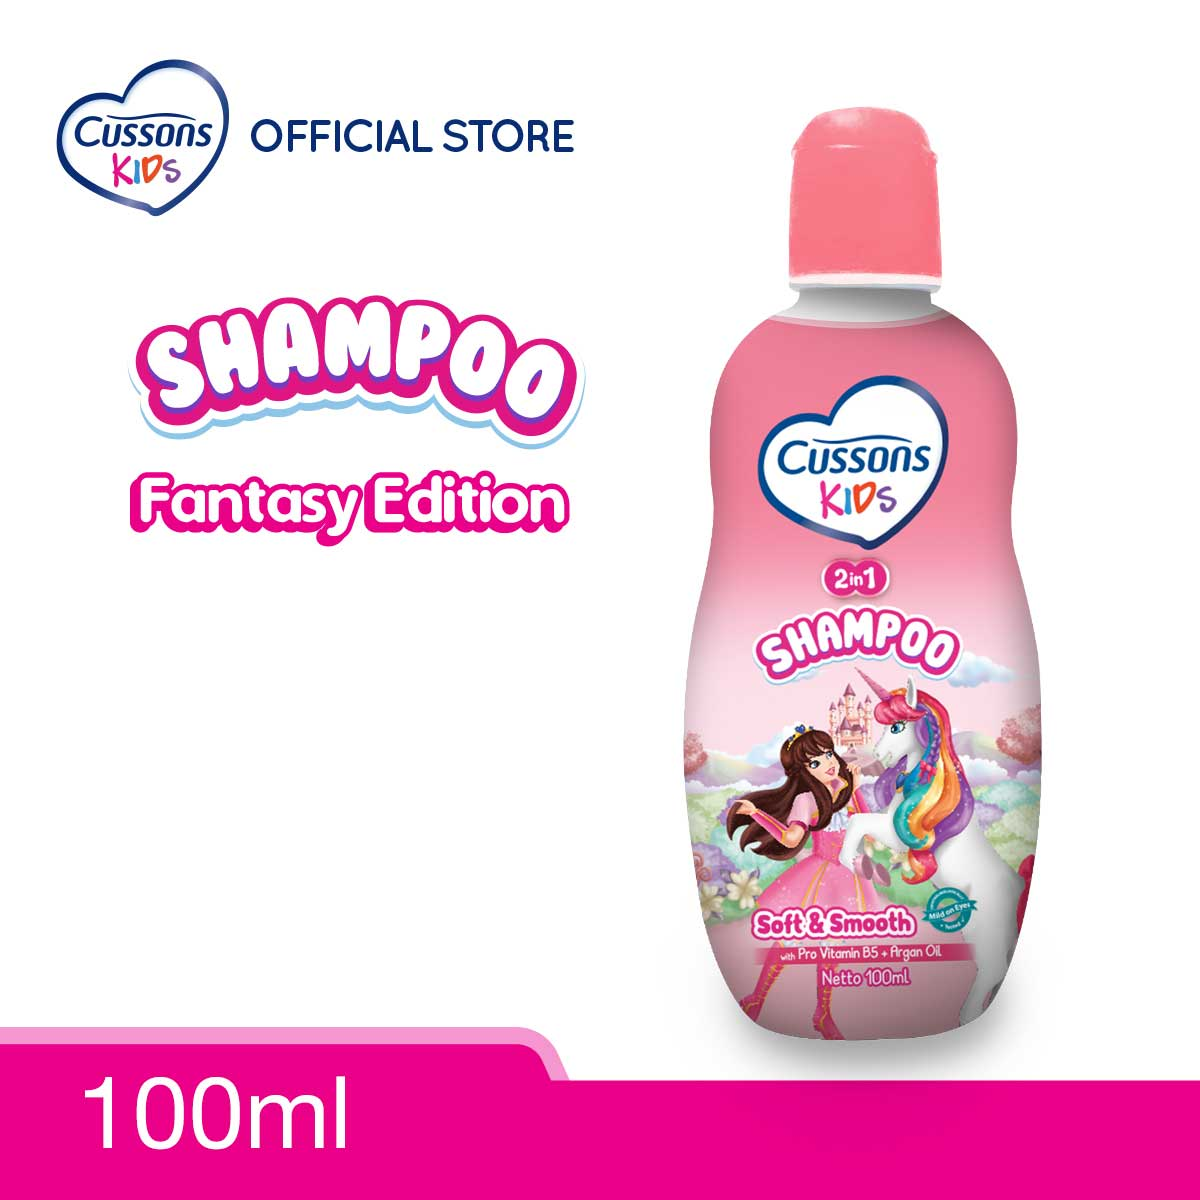 Cussons Kids Shampoo Unicorn Soft & Smooth Shampoo 100ml